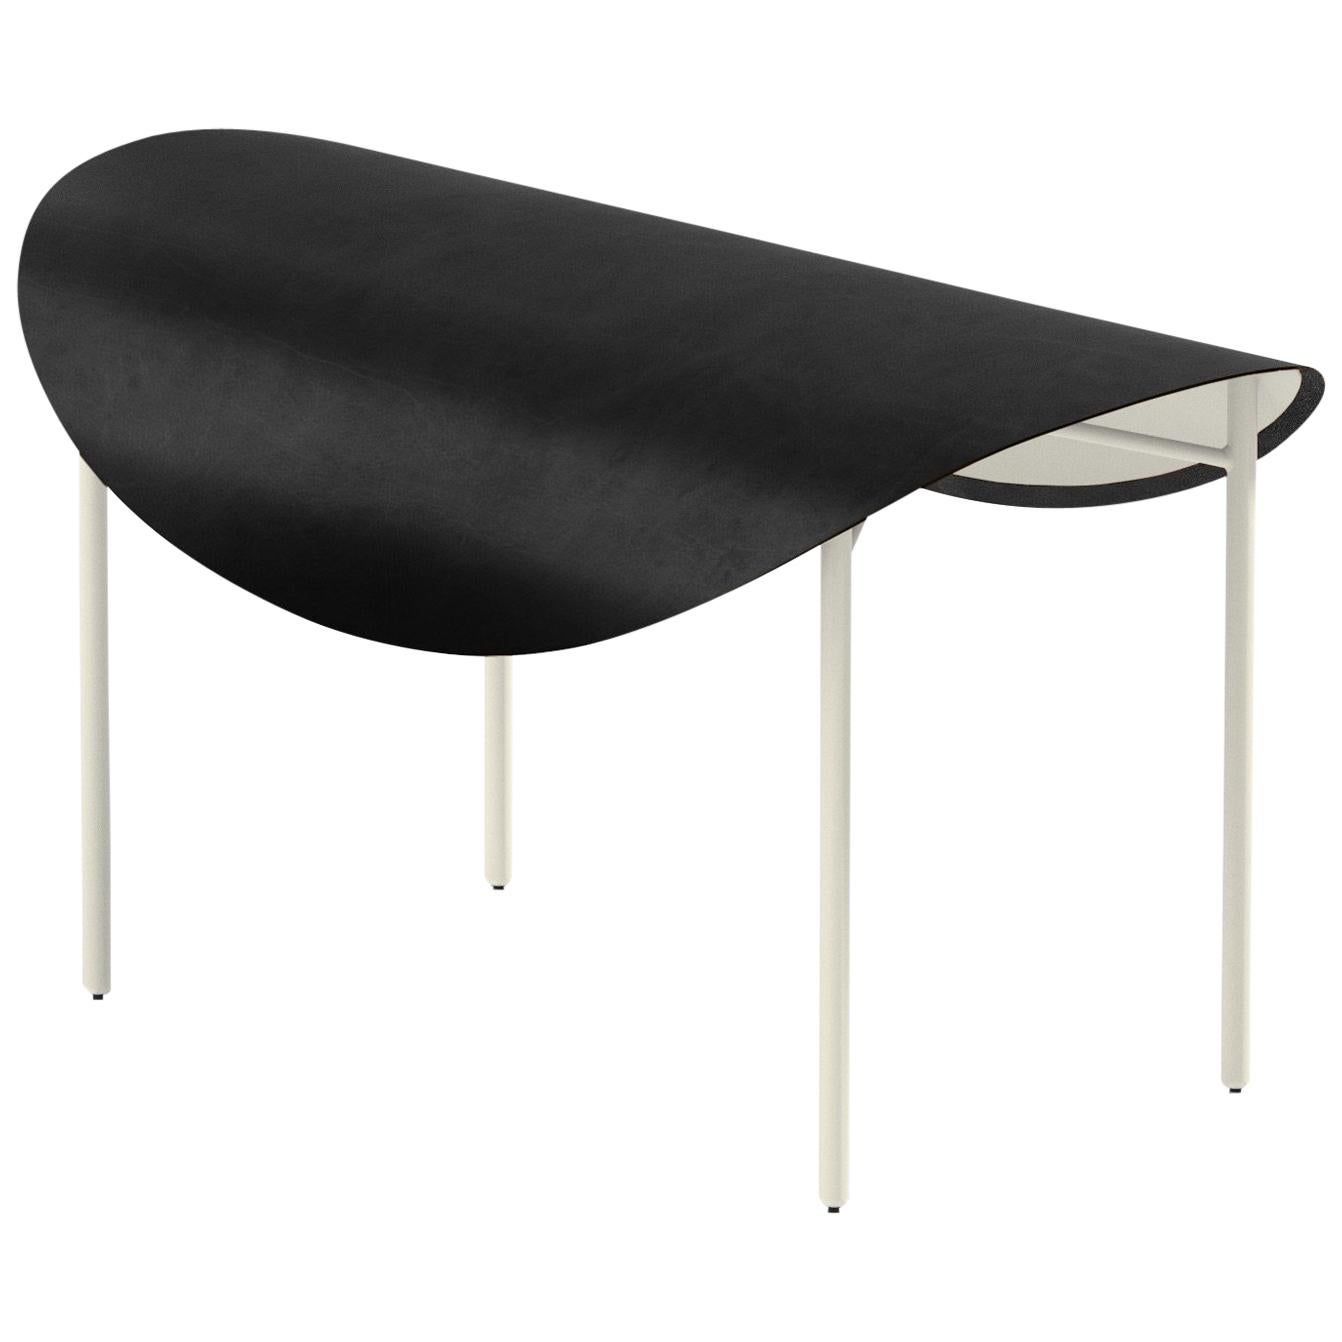 The Tack Bench, Calen Knauf, Black and Beige, Steel Leather